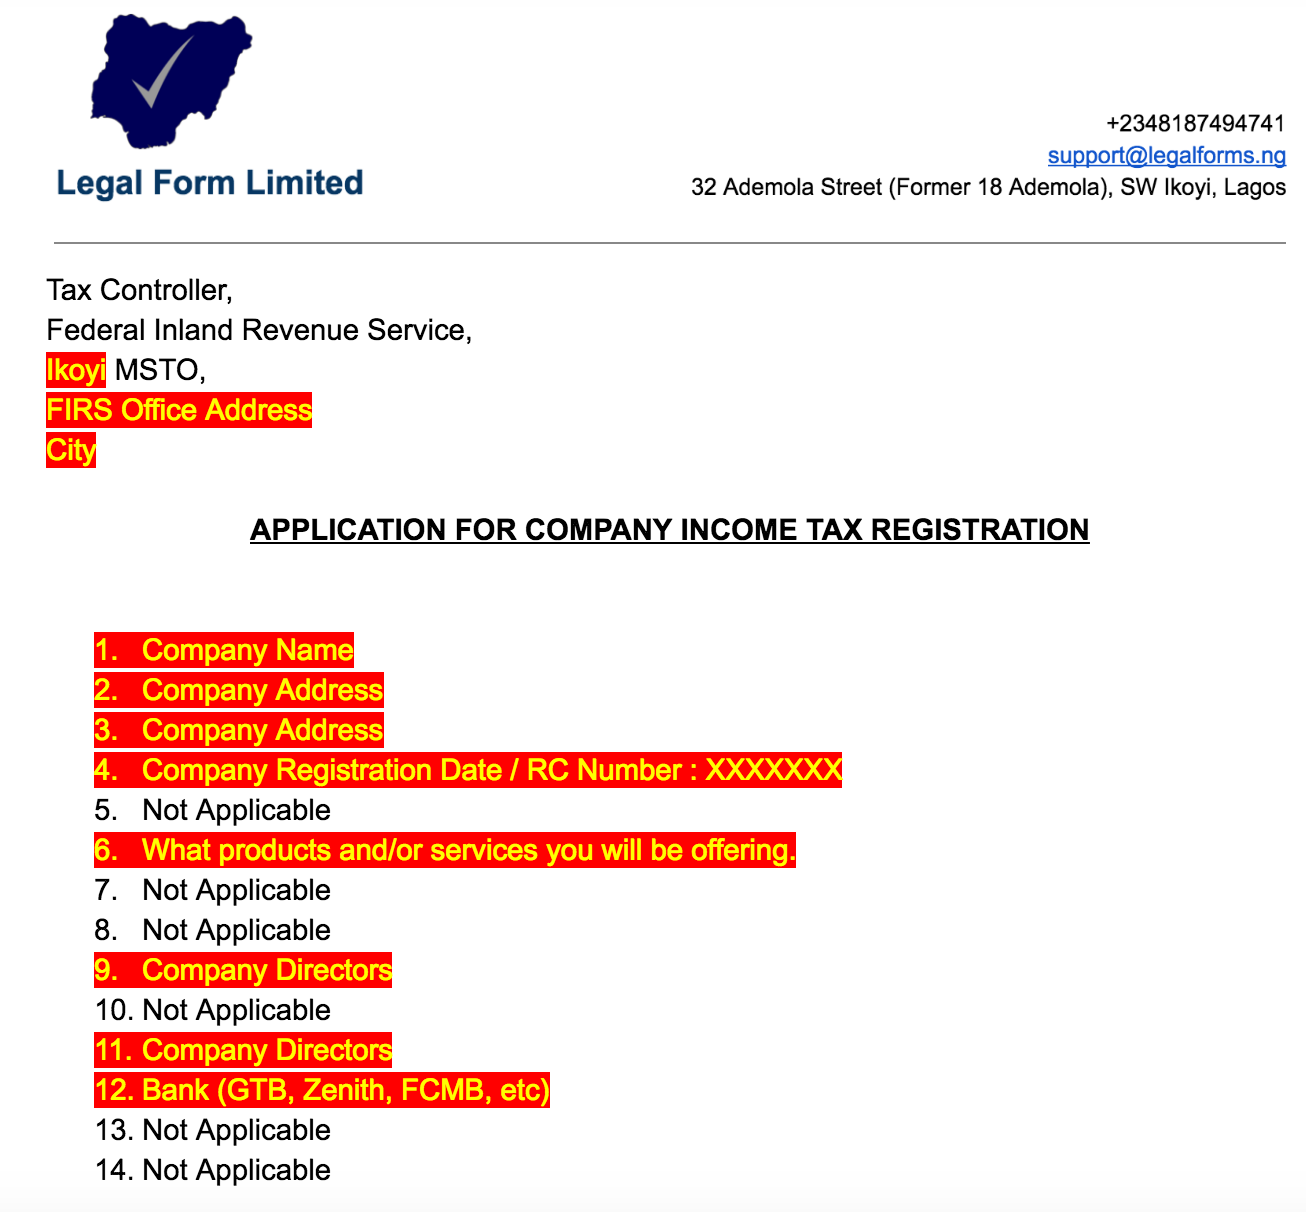 TIN Application Letter with FIRS Nigeria - Legal Forms - Medium